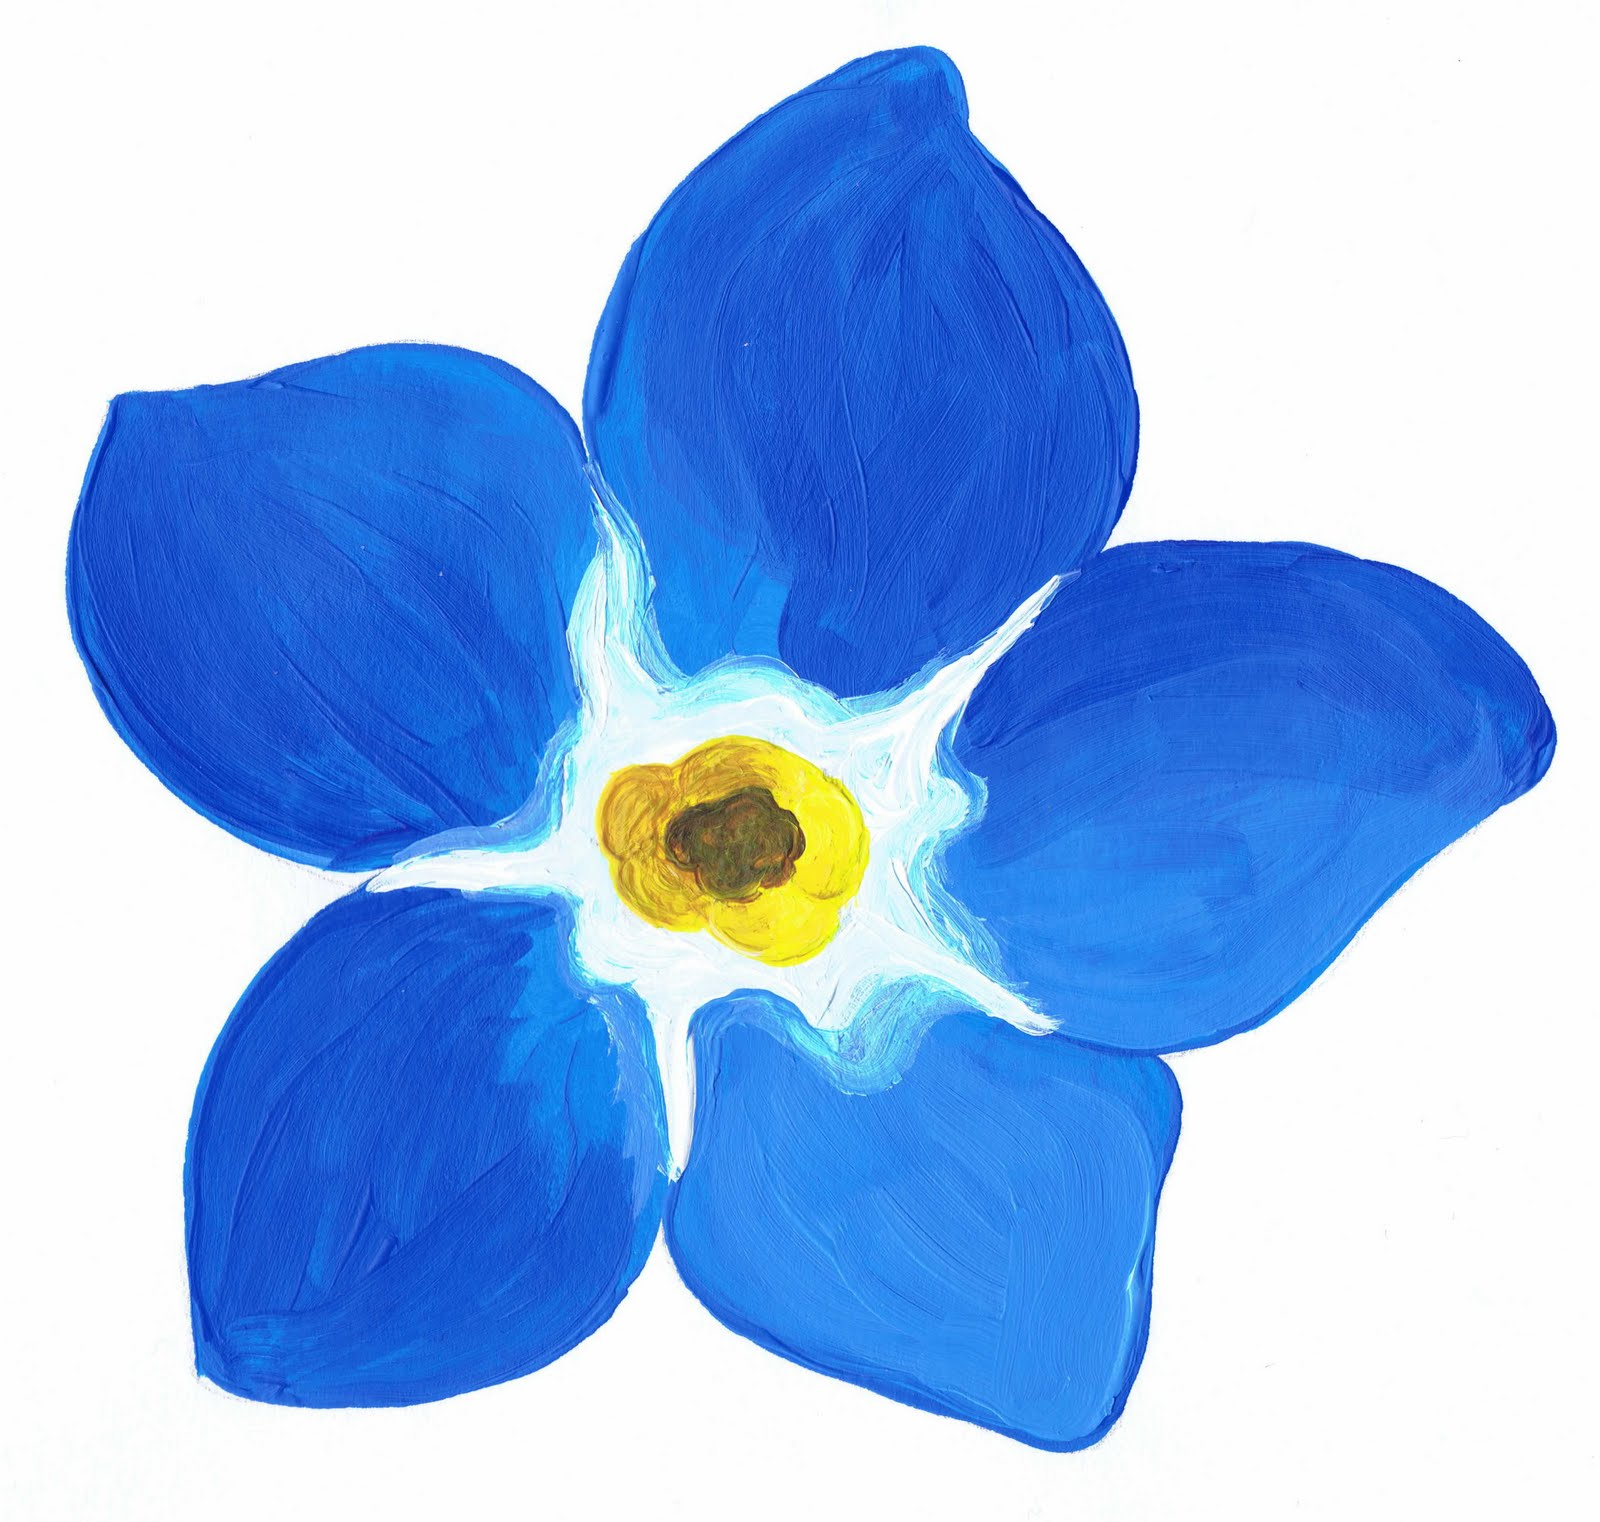 Blue Flower Forget me not Watercolor Clipart by mtnlaurelarts.